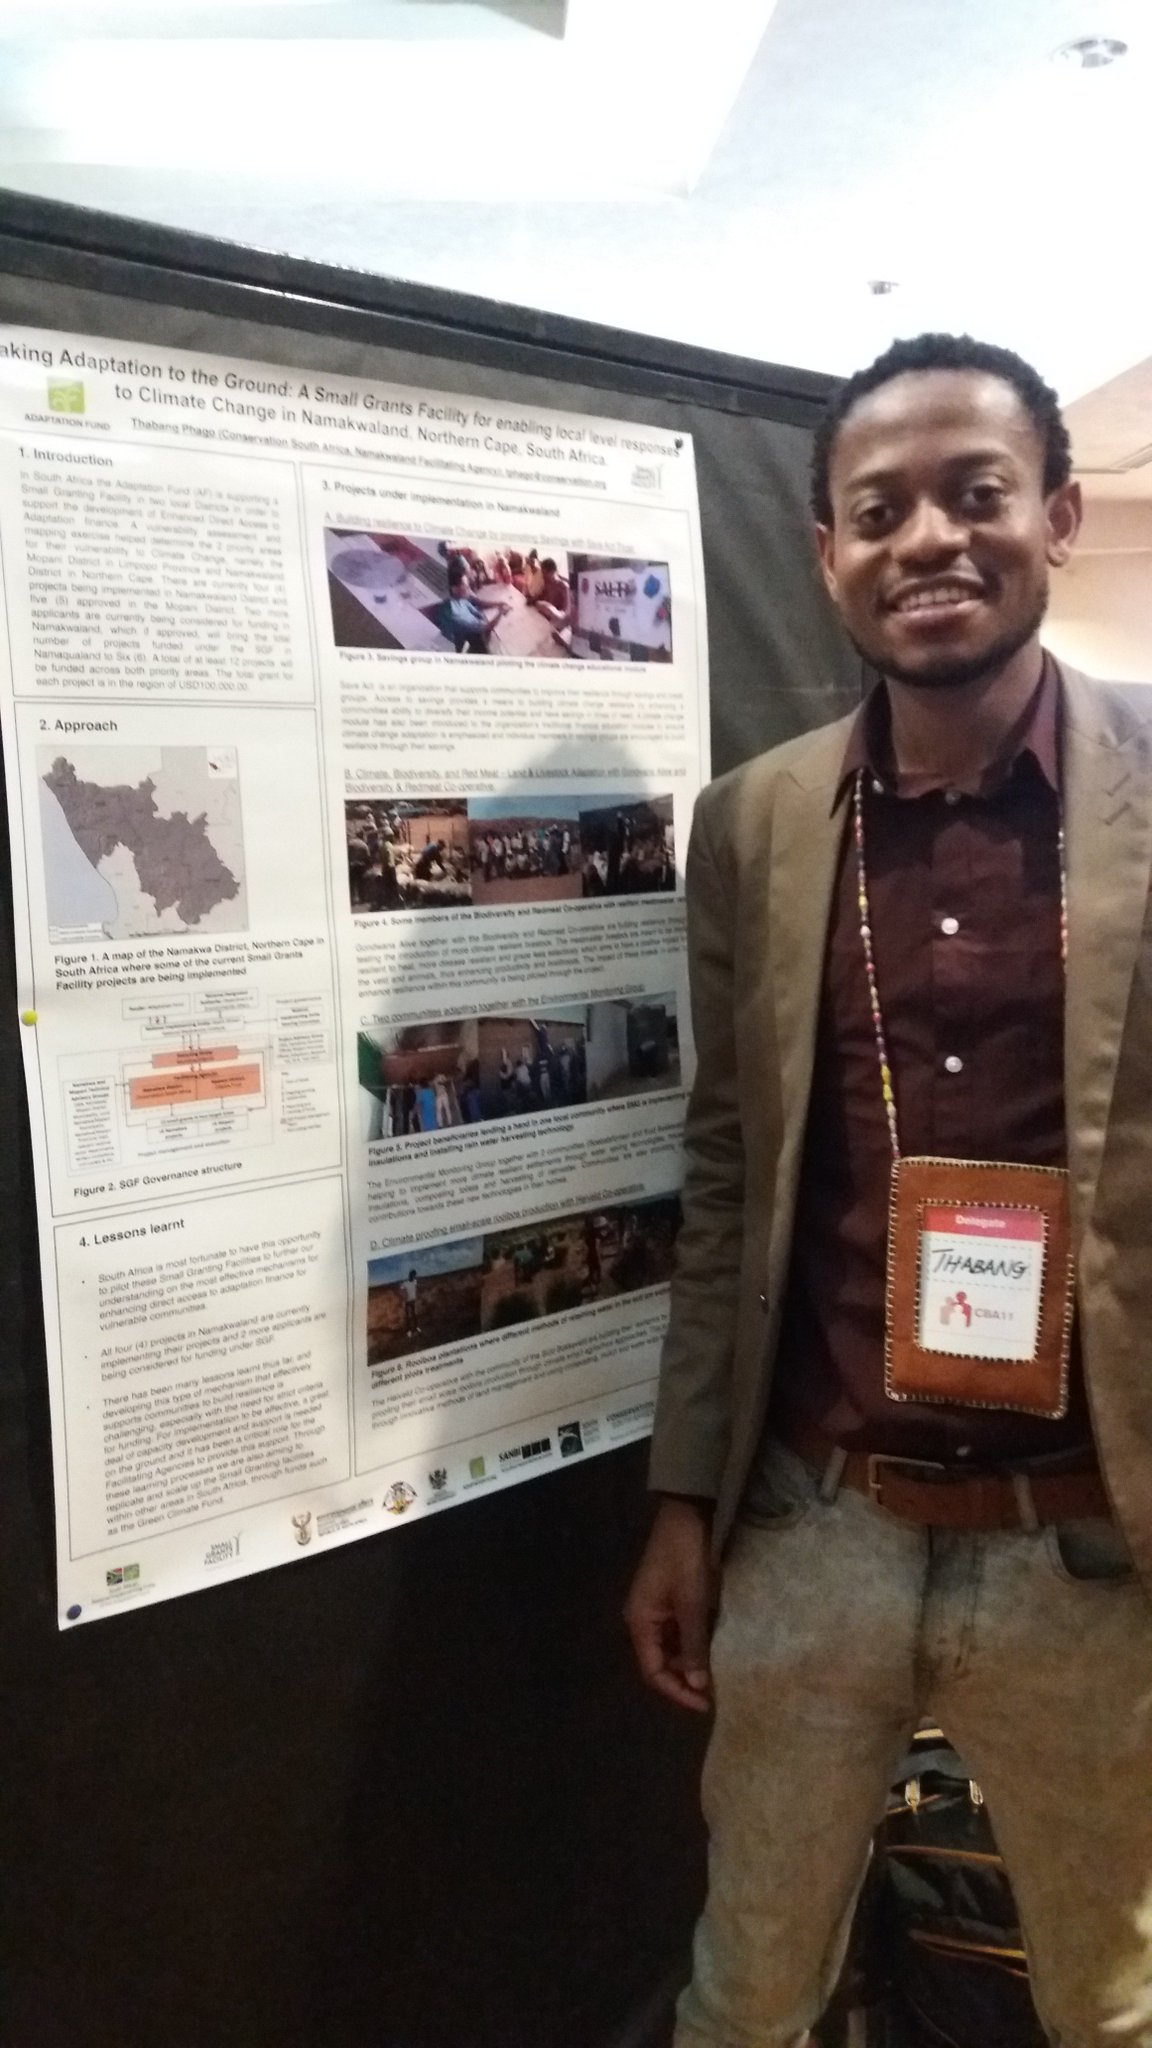 Congratulations @PhagoThabang for coming in second place for #posterpresentation on #smallgrantsfacility at #cba11 #uganda @ConservationOrg https://t.co/0EeR0SHgRi